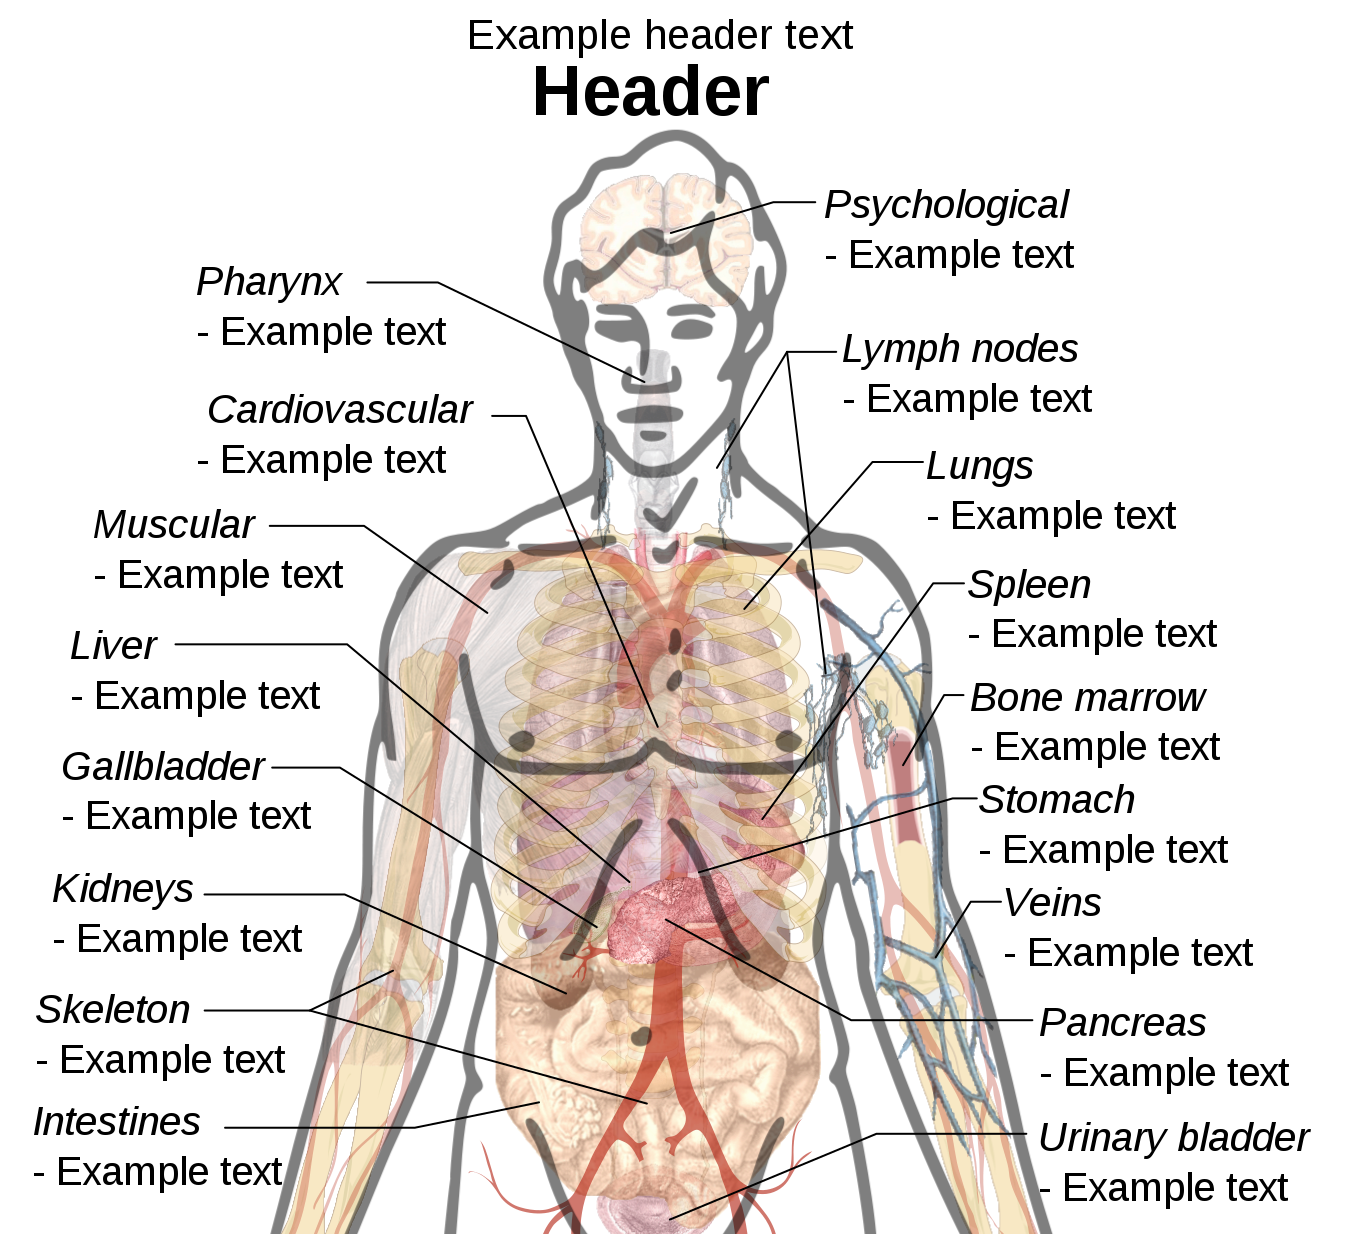 Humbody Organs Drawing At Free For Personal Use Full Body Muscle Diagram Anatomy Muscles Labeled 846x1024 Female Human 1363x1234 Fileadult Male Template Drawingsvg